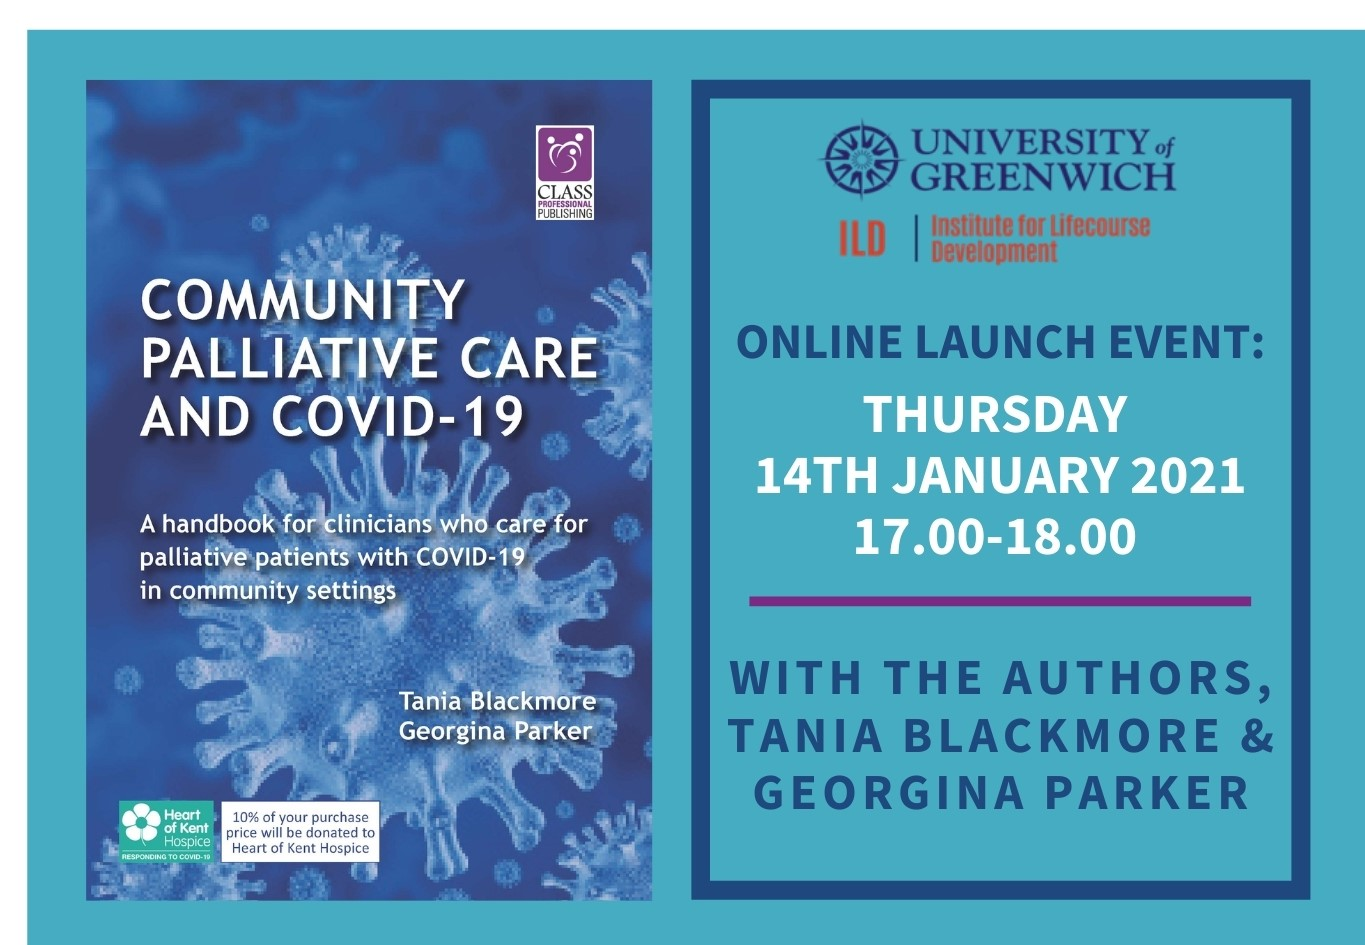 Book Launch - Community Palliative Care and COVID-19